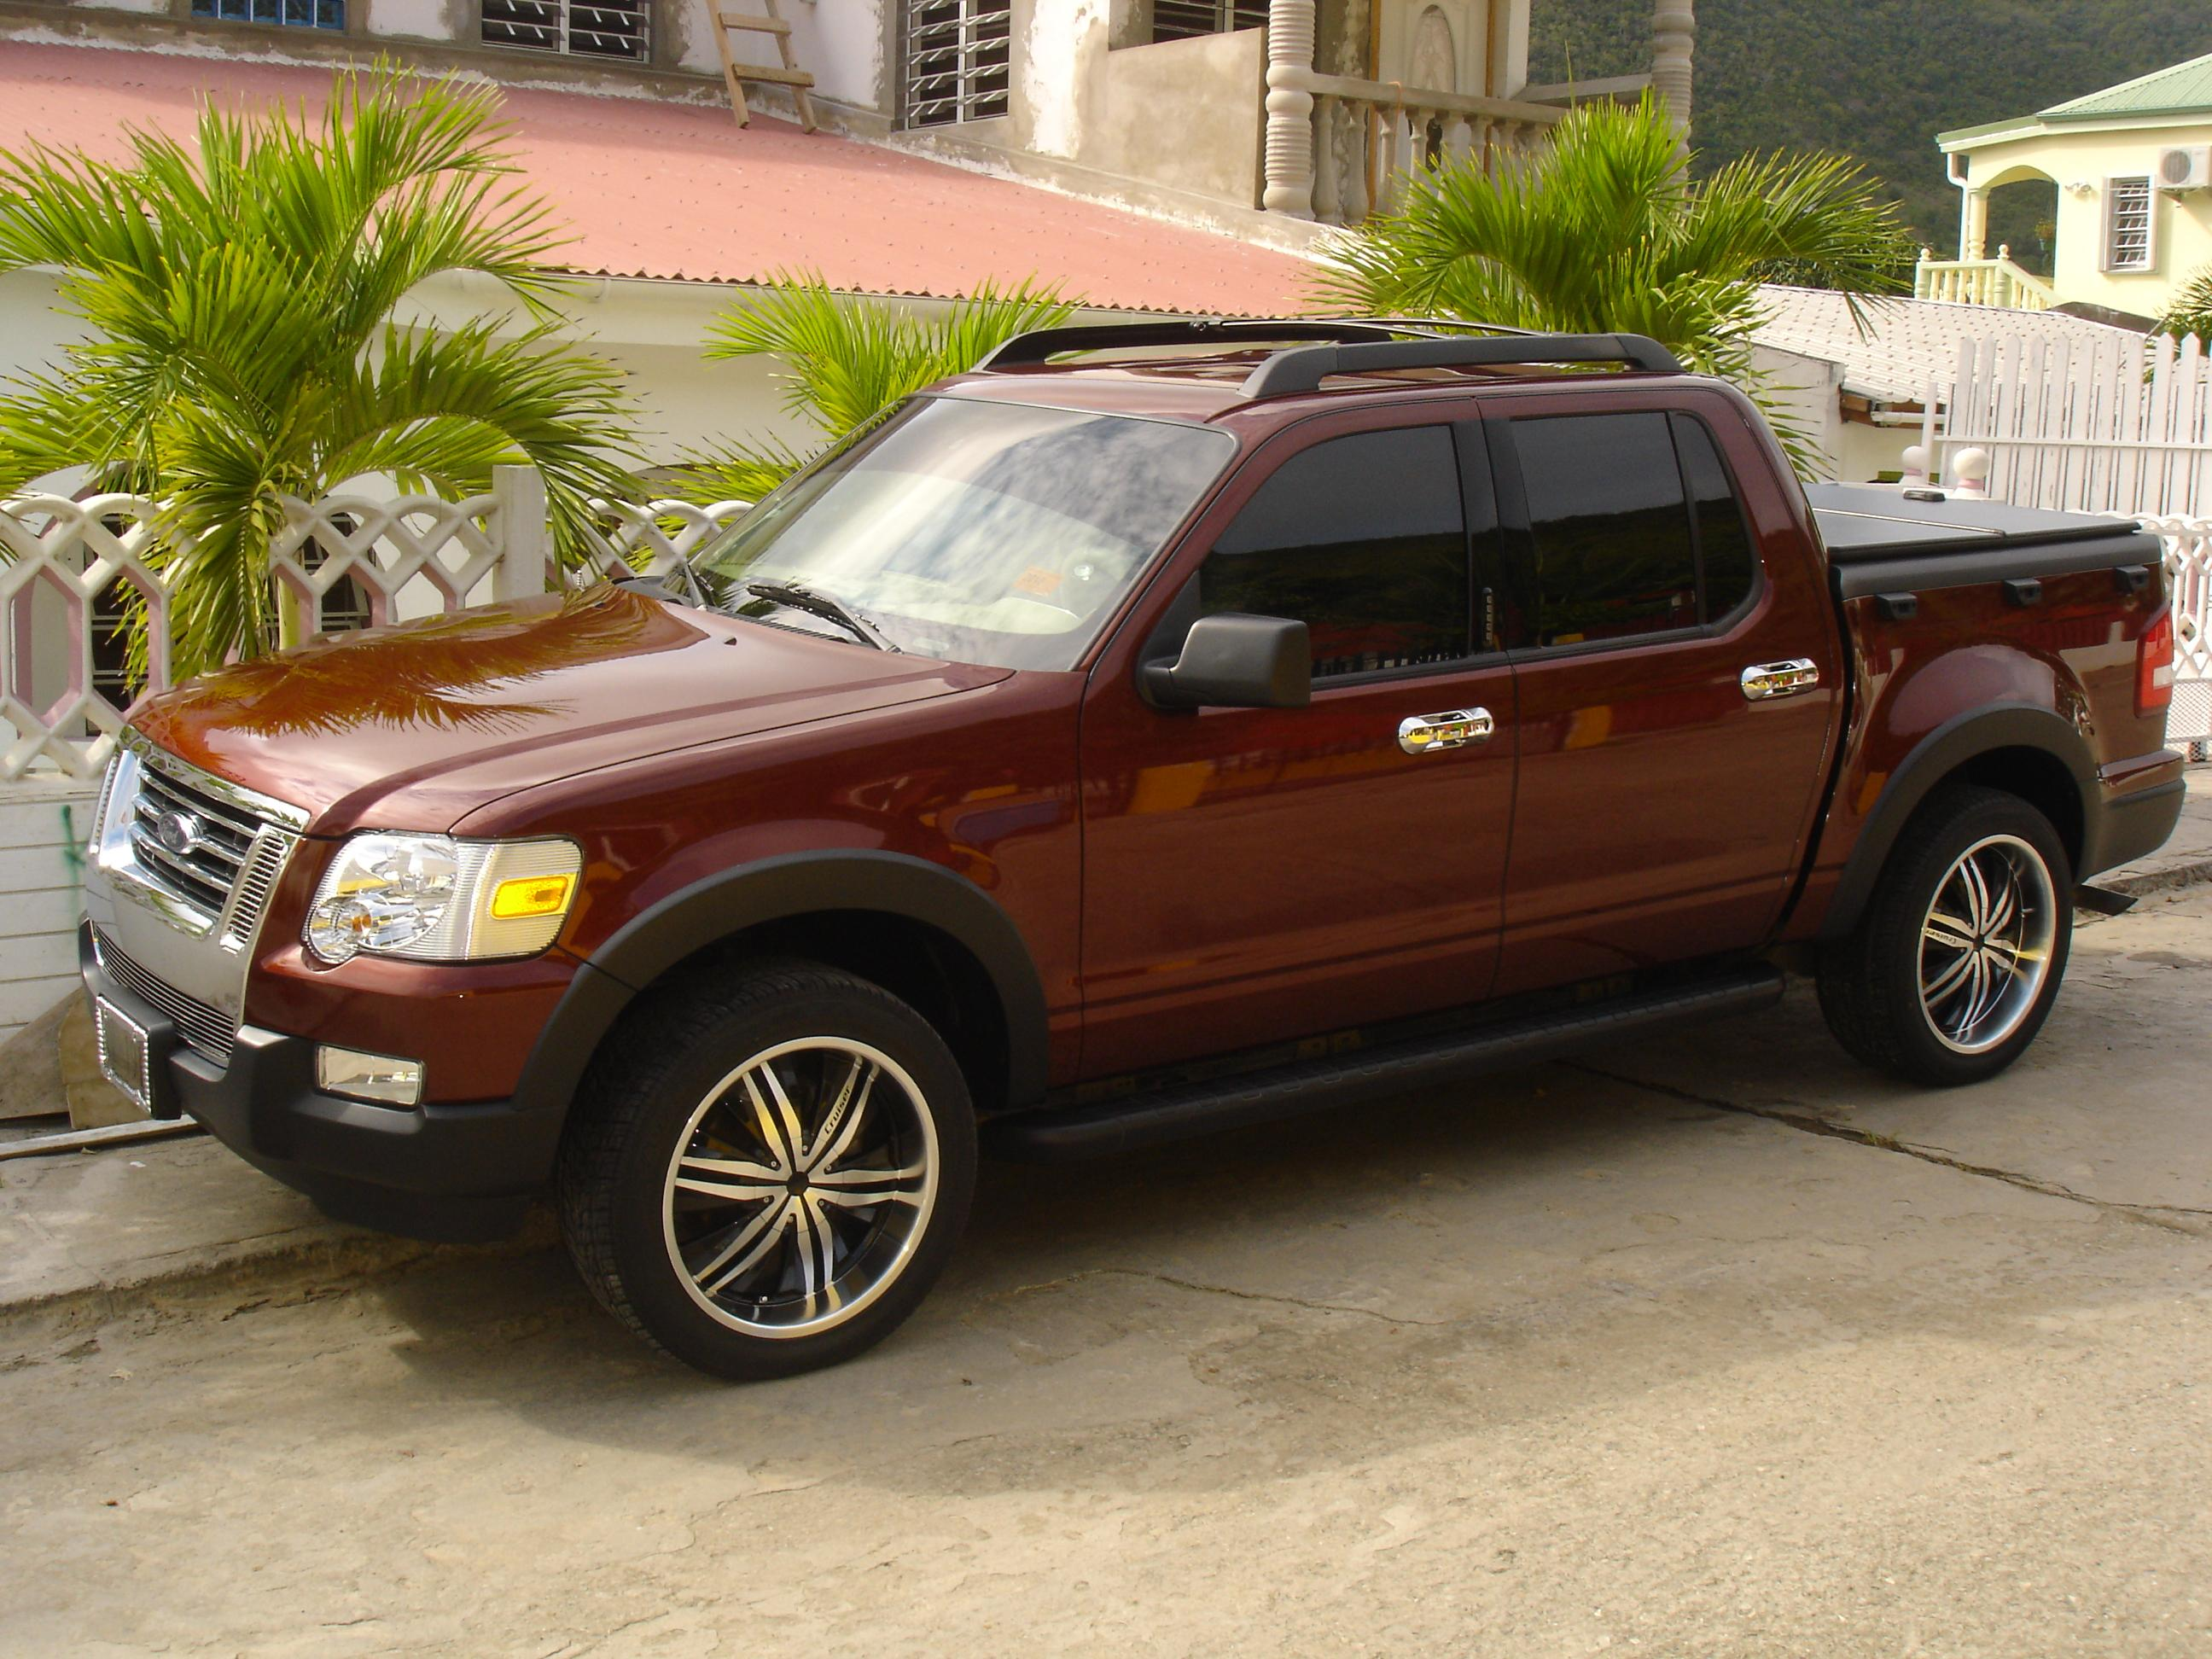 Commissionerrtgh 2009 ford explorer sport trac